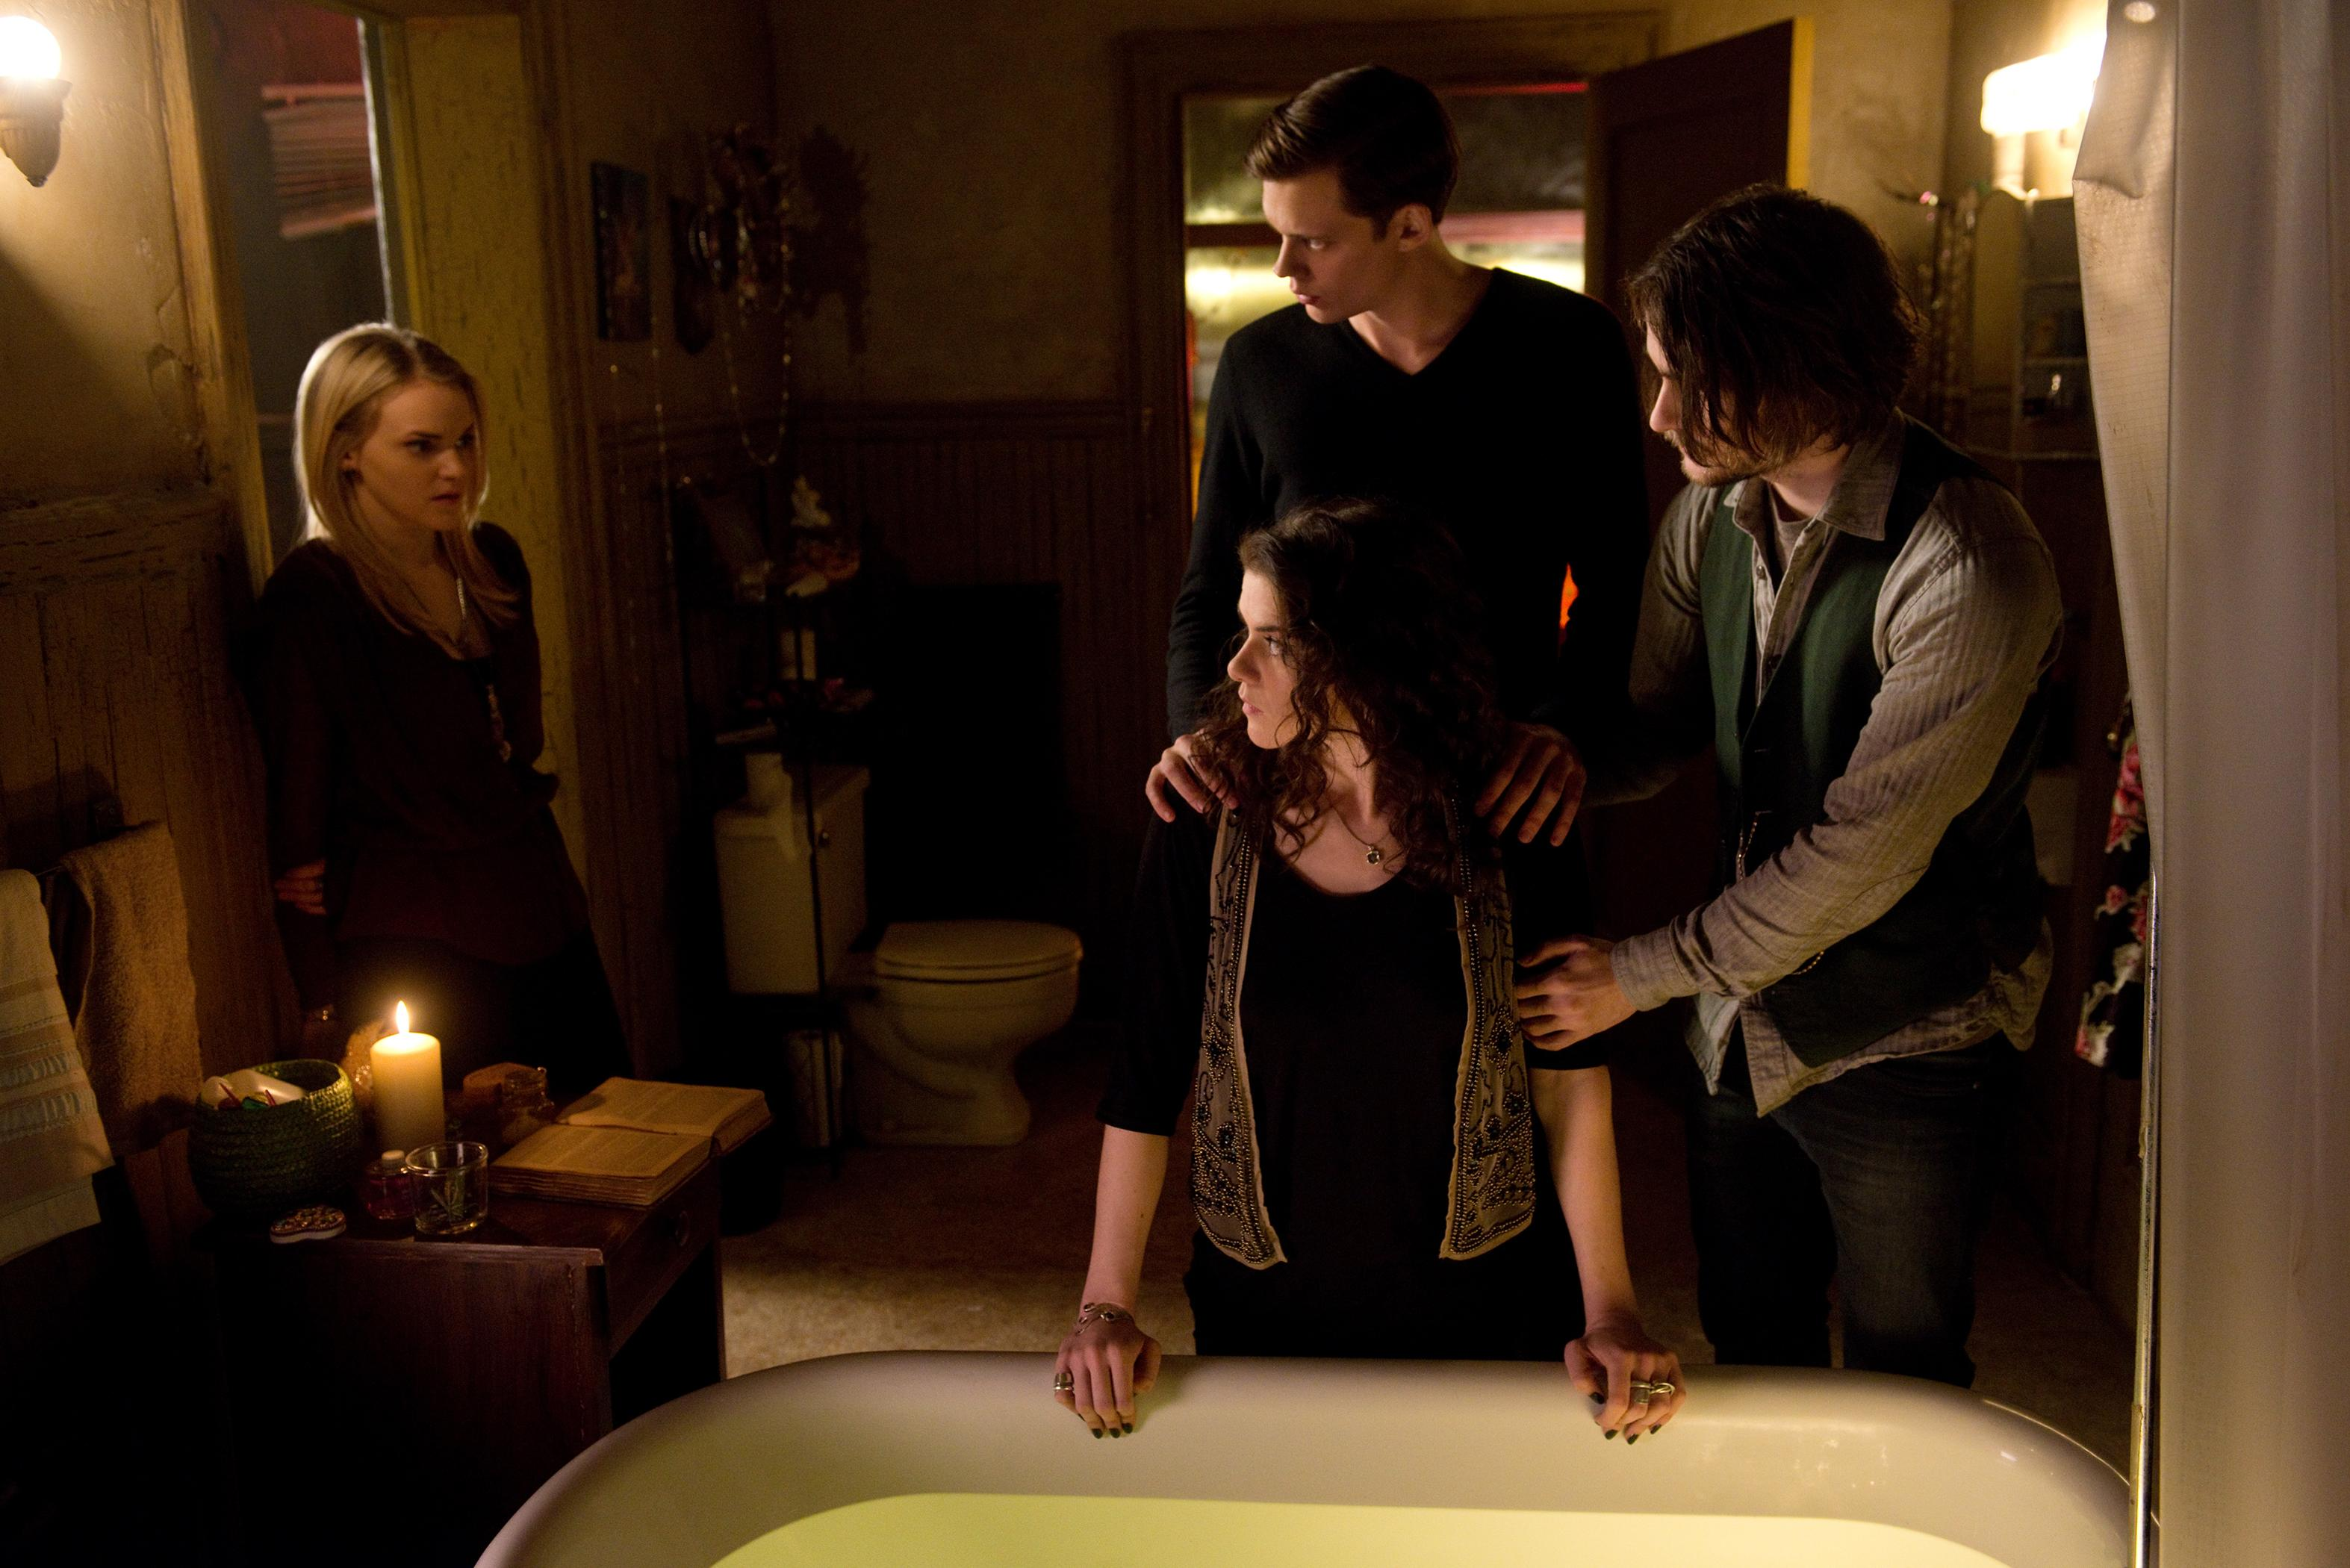 hemlock grove roman and letha relationship counseling